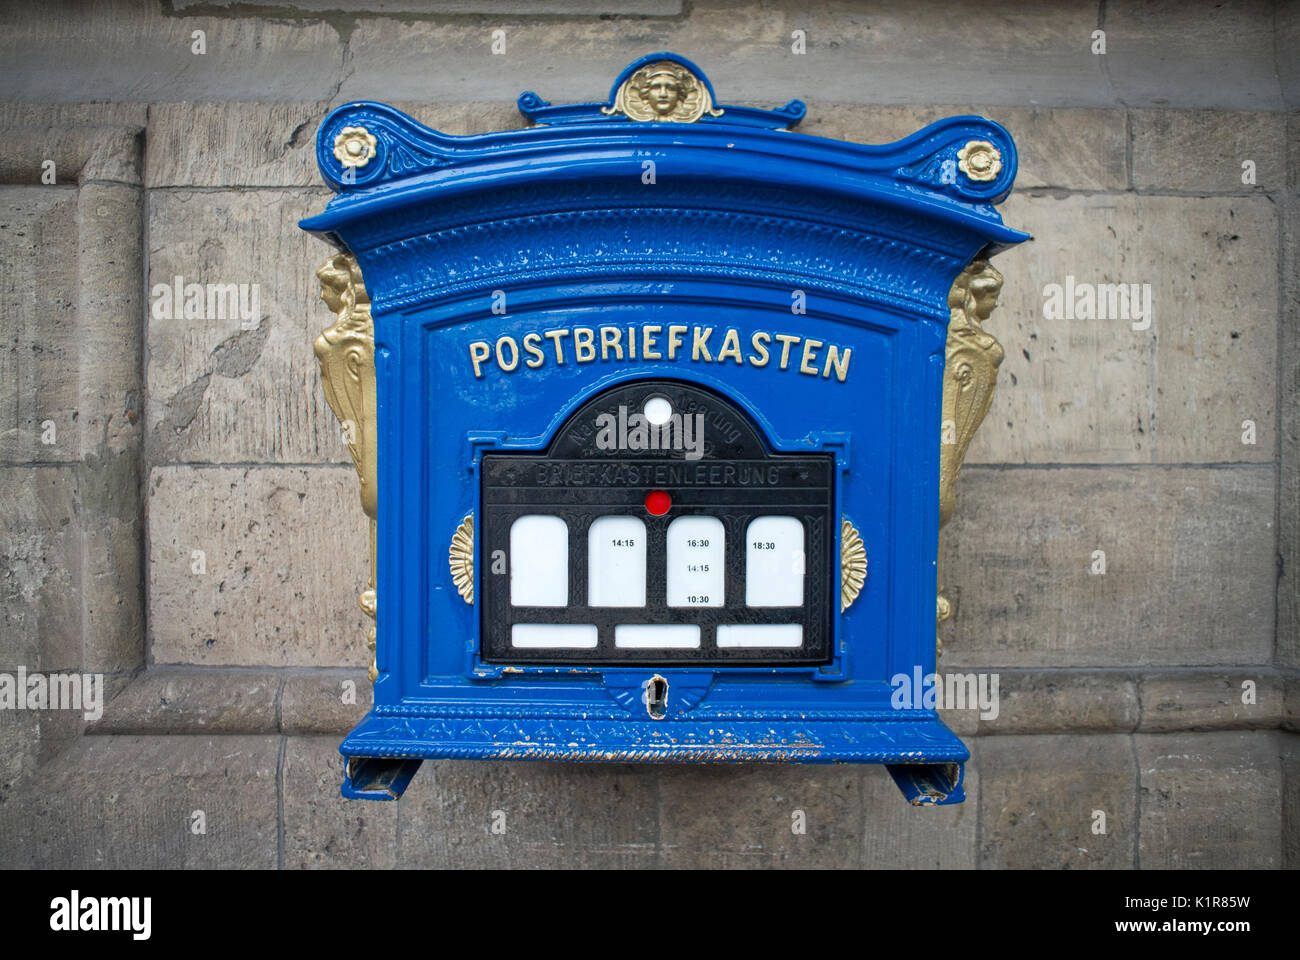 Post Box at the Rathaus in The Fischmarkt, Erfurt, Thuringia, Germany - Stock Image